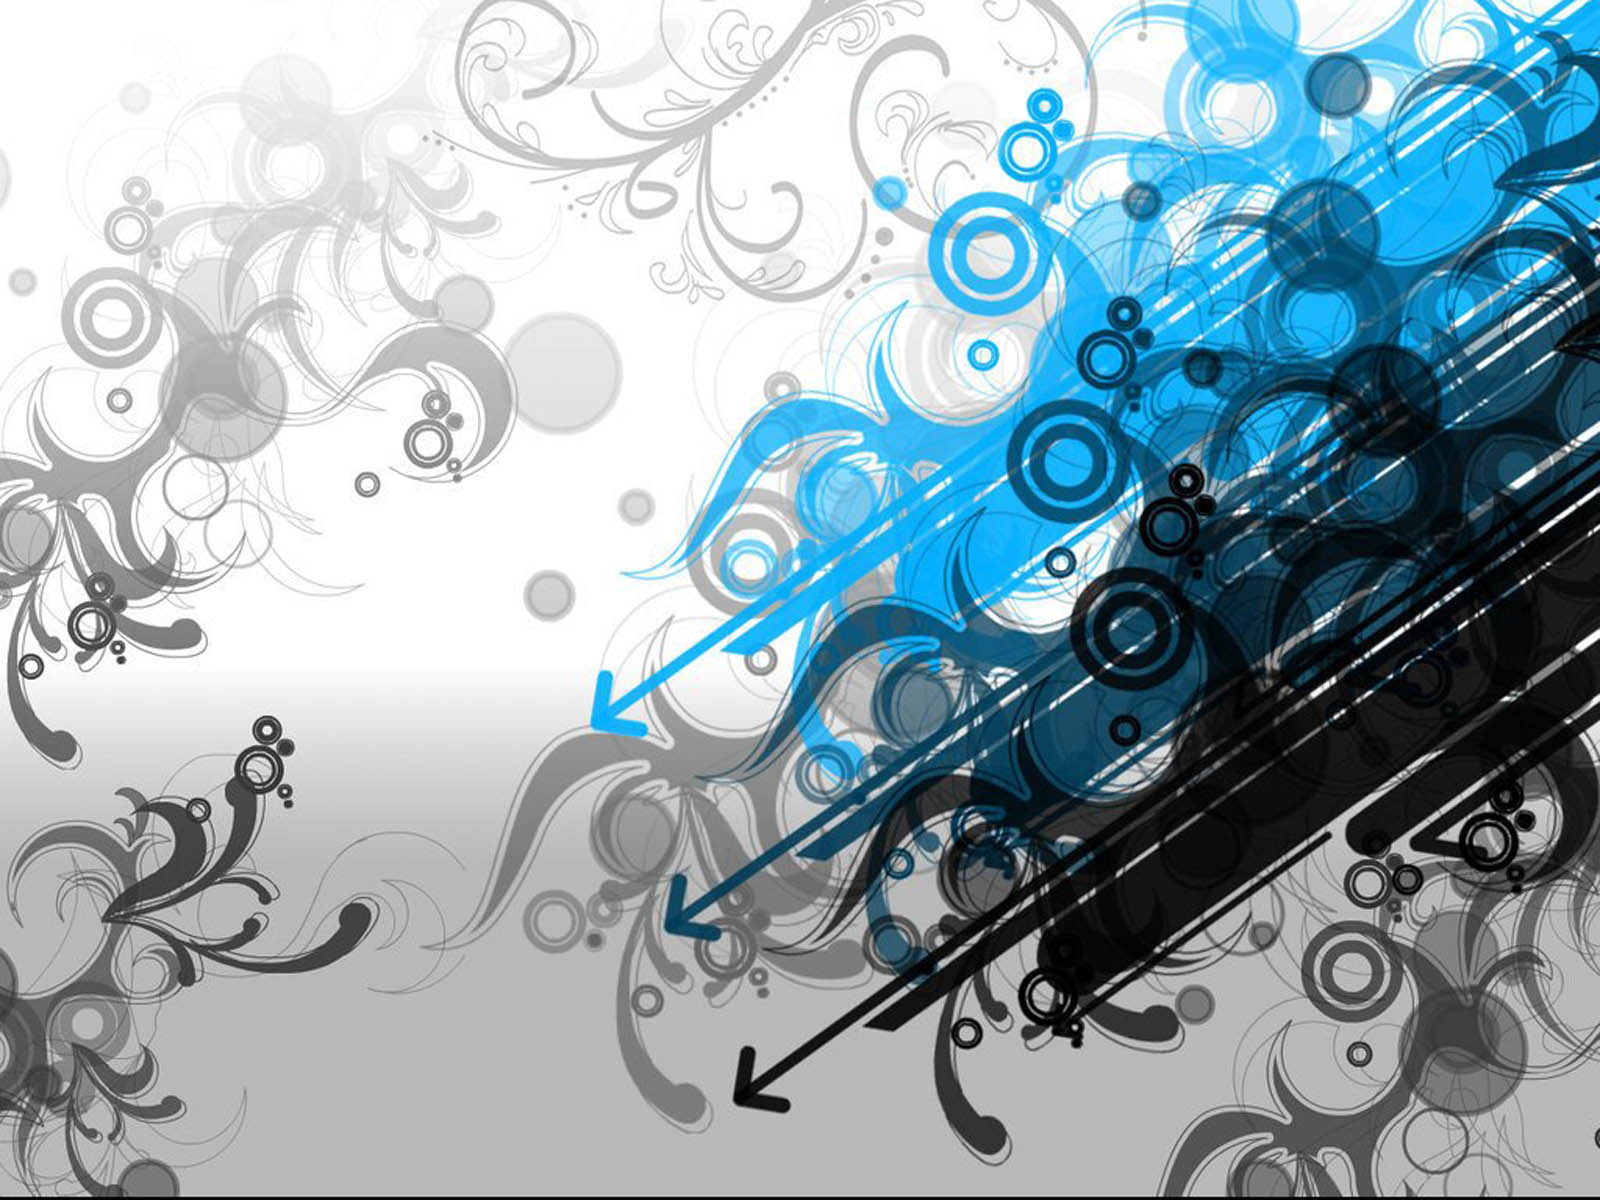 Graphic Abstract Desktop Backgrounds, GraphicAbstract Photos, Graphic